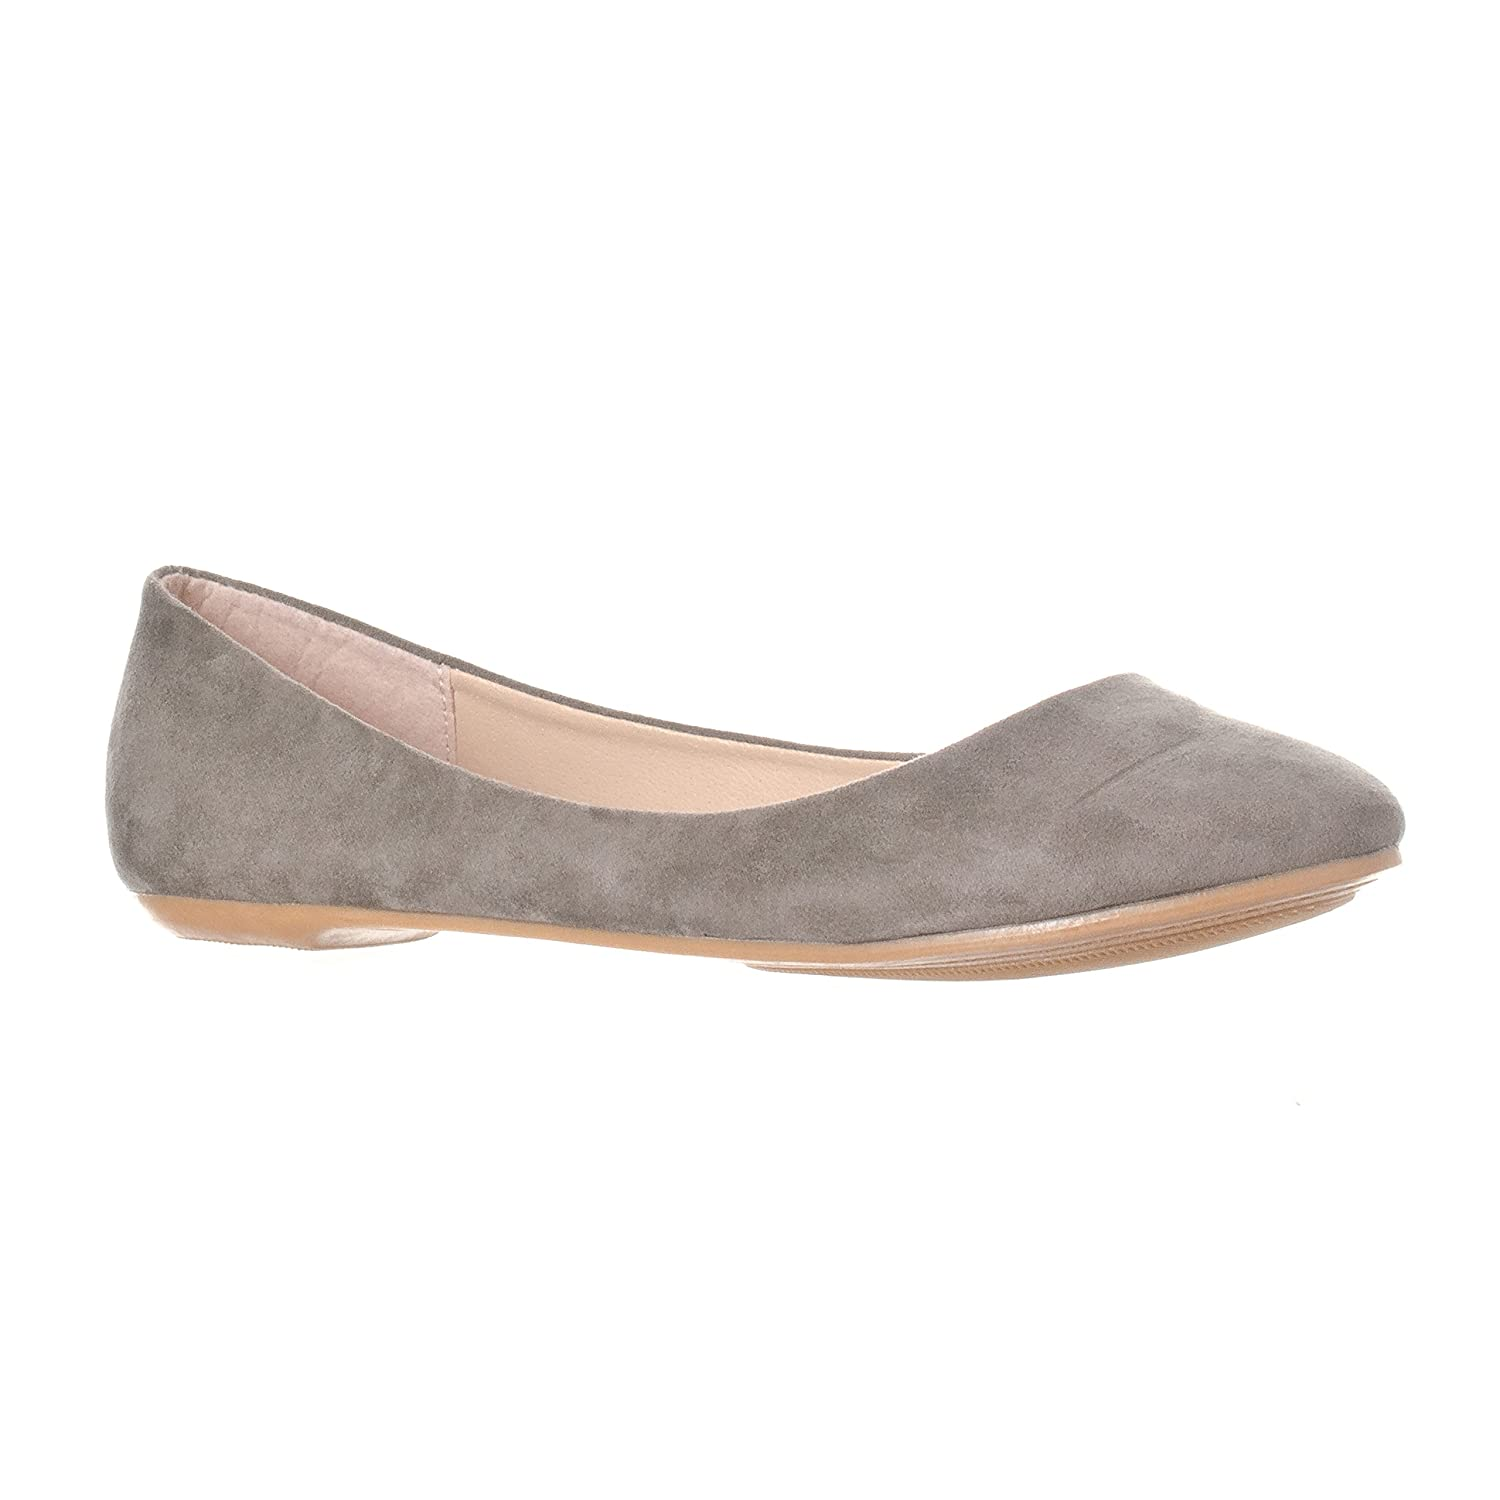 Riverberry Women's Aria Closed, Round Toe Ballet Flat Slip On Shoes B017CC3WAS 8.5 M US|Grey Suede